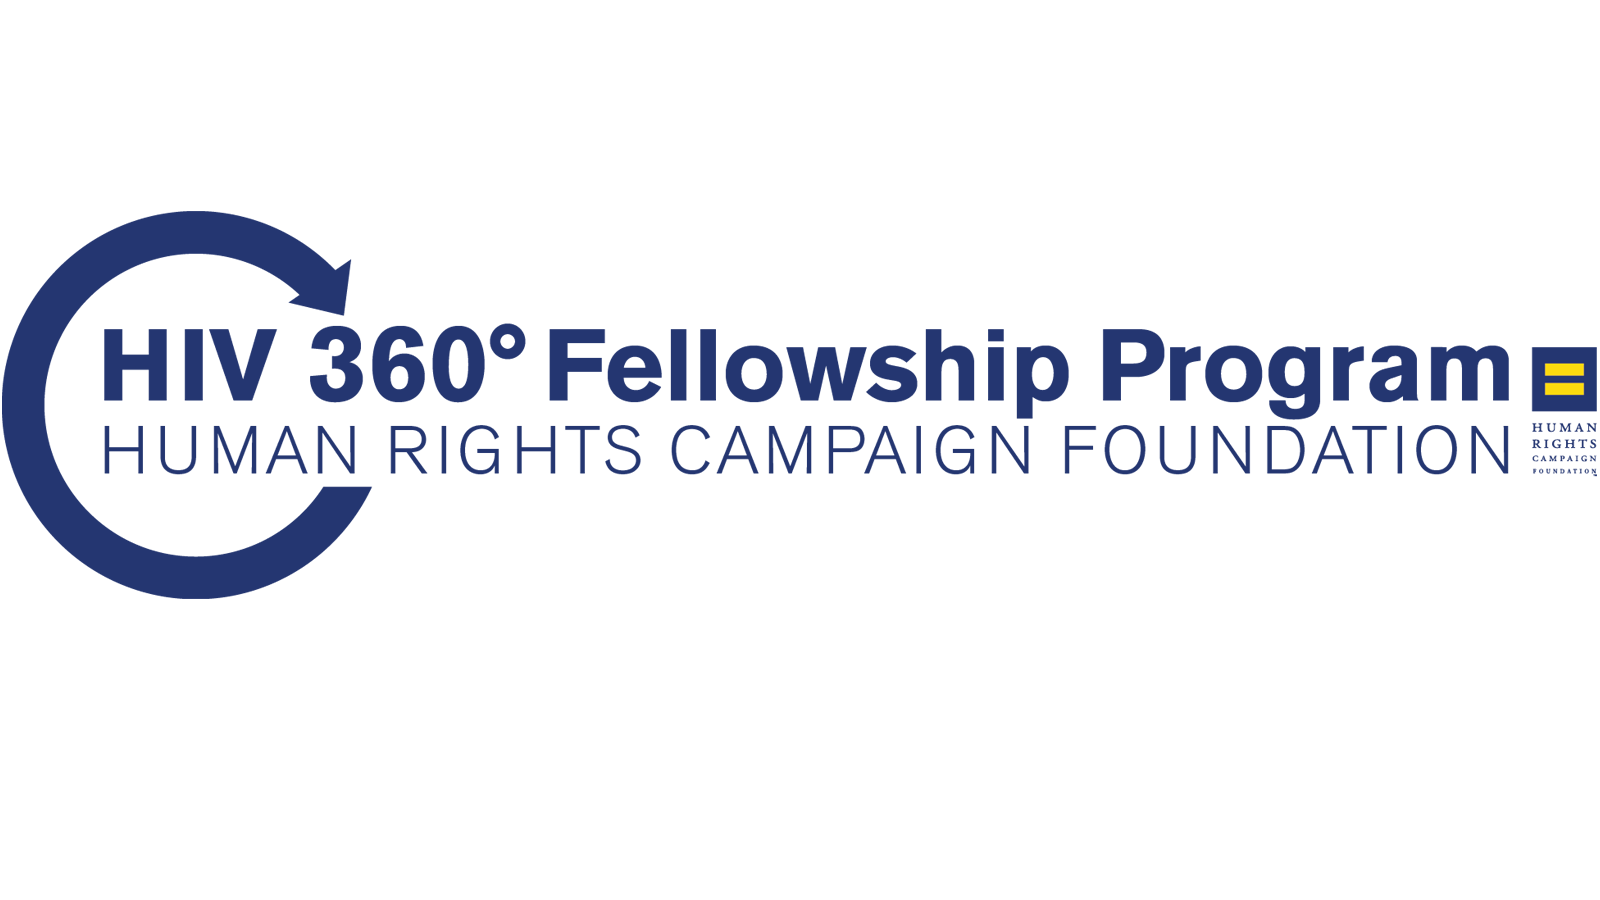 HRC Foundation Launches Second Year of Fellowship Program for Young Leaders